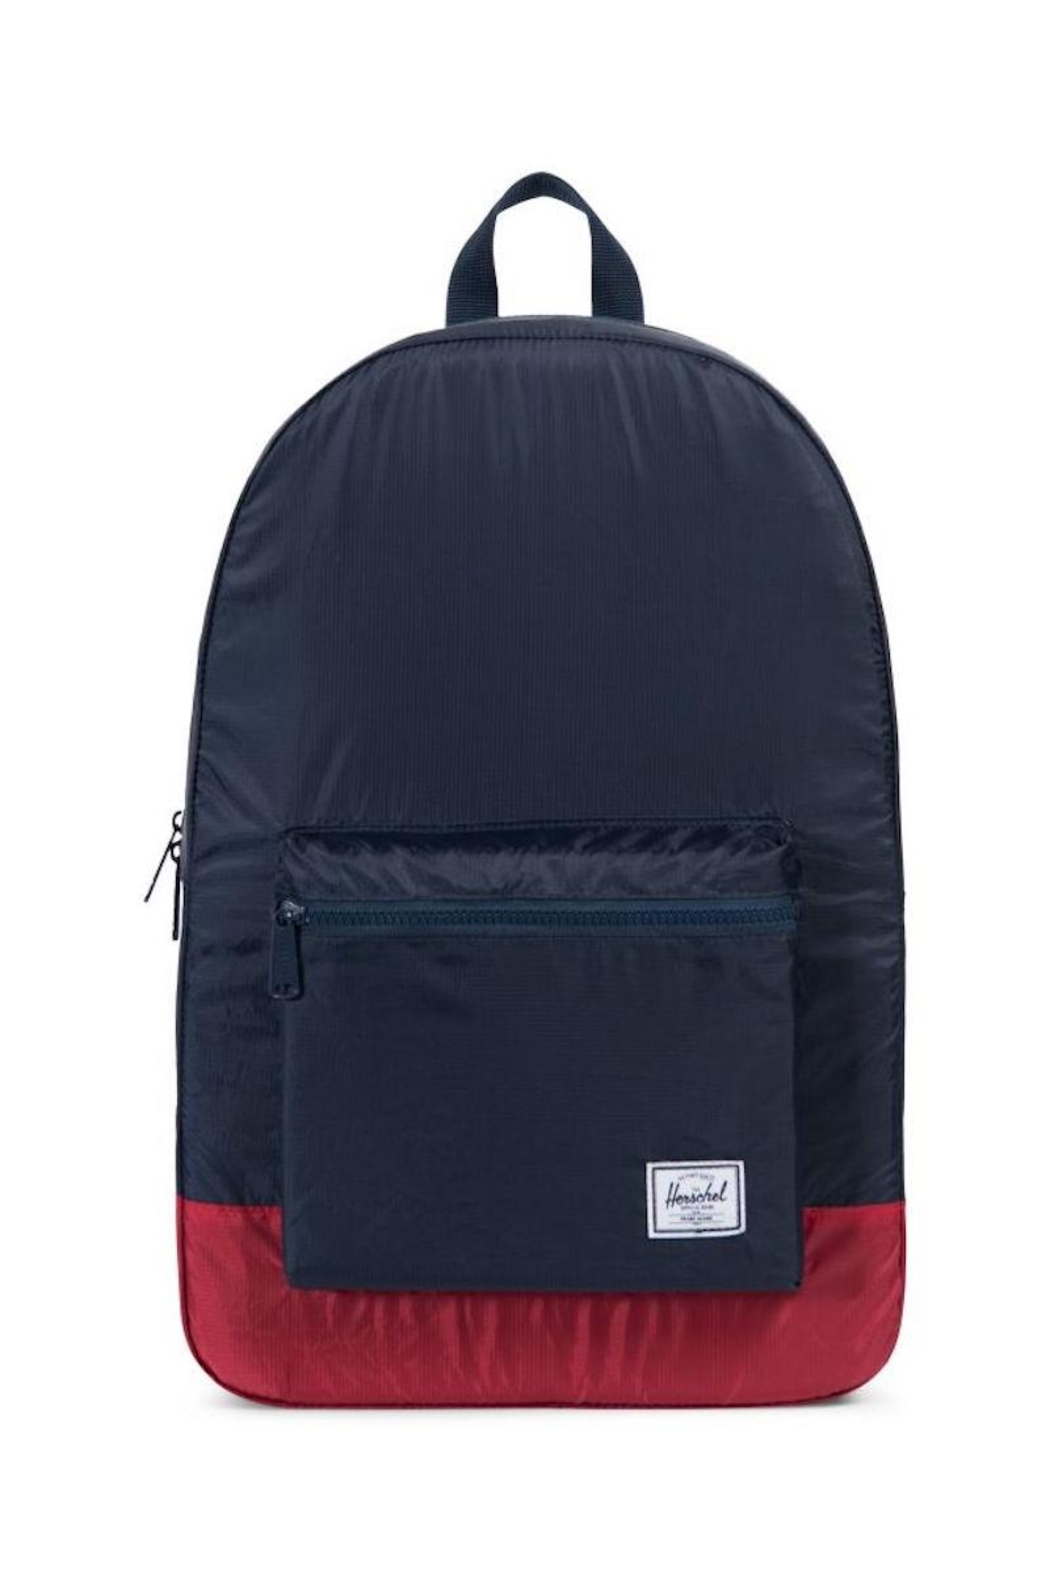 Herschel Supply Co. Navy/red Packable Daypack - Main Image